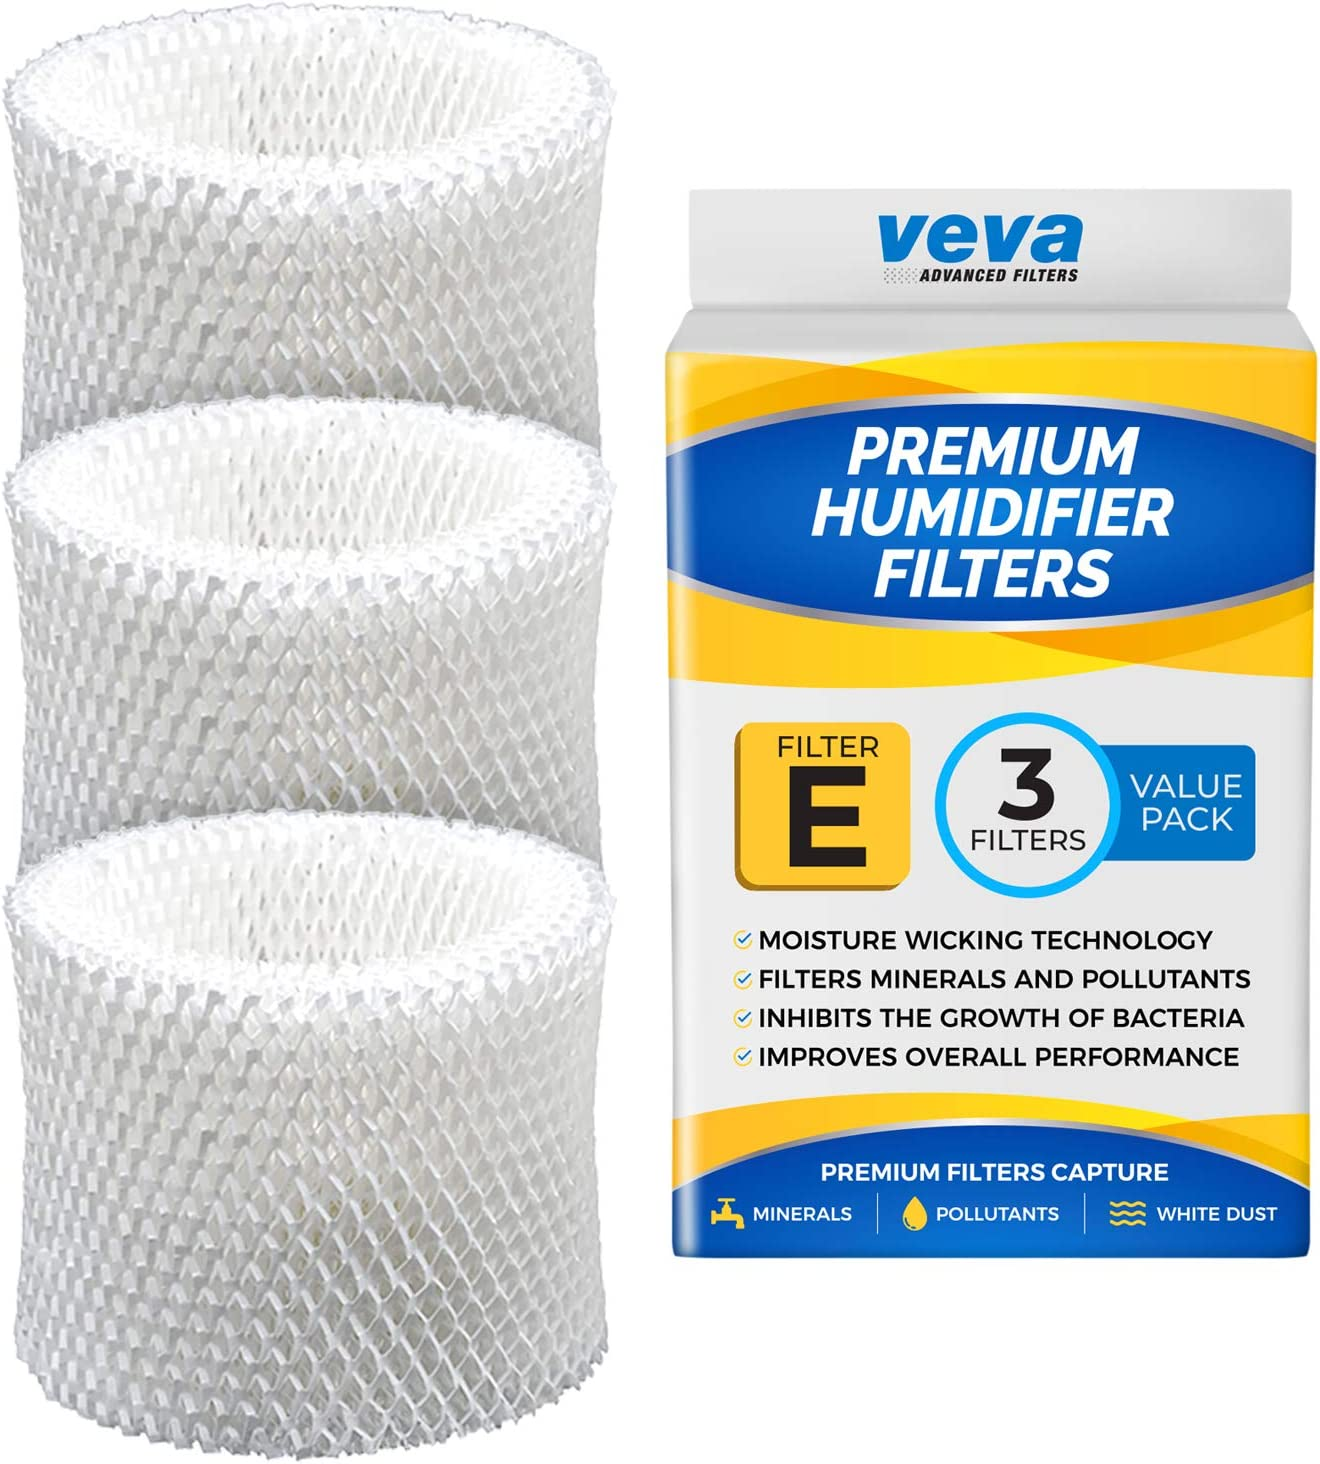 VEVA 3 Pack Premium Humidifier Filters Replacement for HW Filter E, HC-14, HCM-6009, HCM-6011, HEV680, HEV685 Series humidifiers